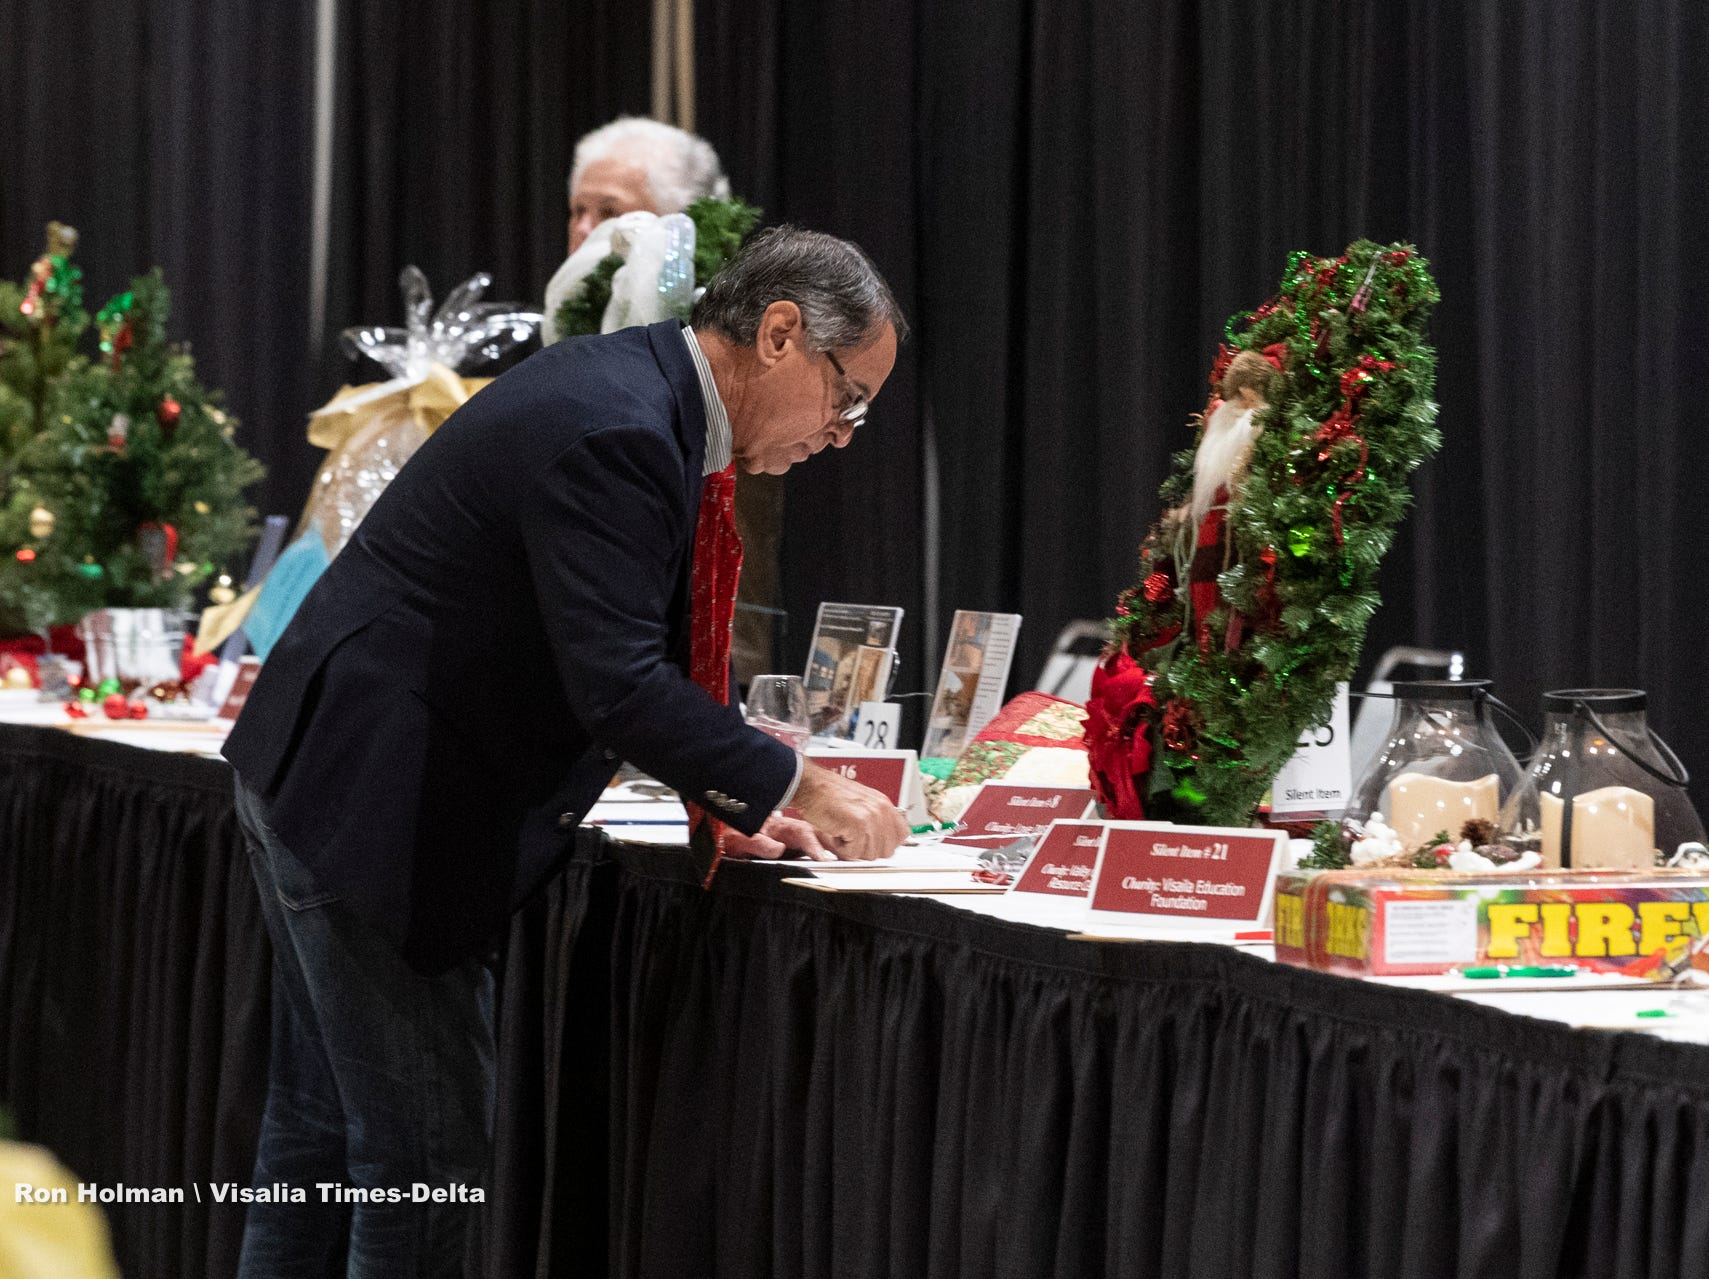 """Visalia's 38th Annual Christmas Tree Auction on Friday, December 7, 2018. This year's theme was """"A Holiday Affair."""" The live auctions alone generated nearly $60,000 in bids."""